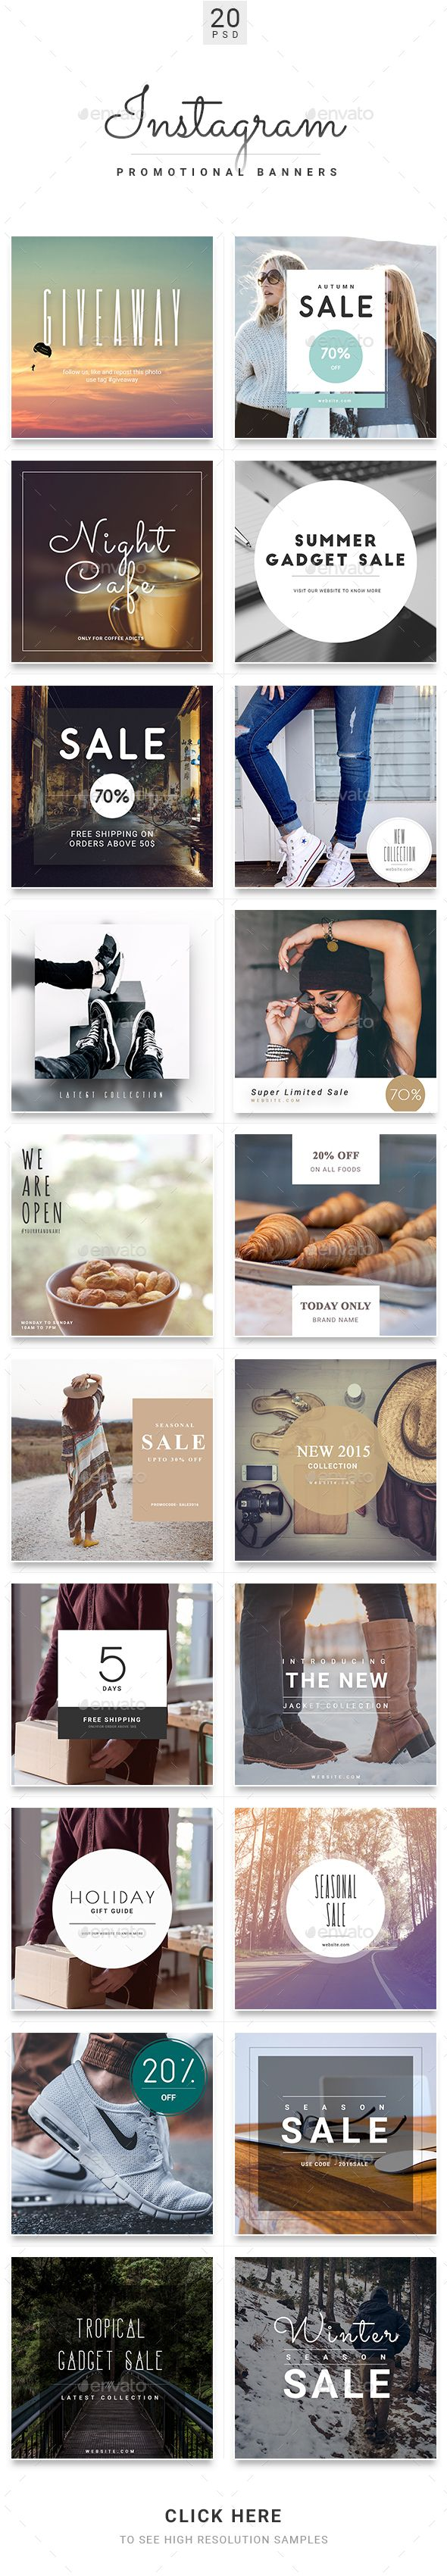 Instagram PSD Prohibition Template. Download here: graphicriver.net / …